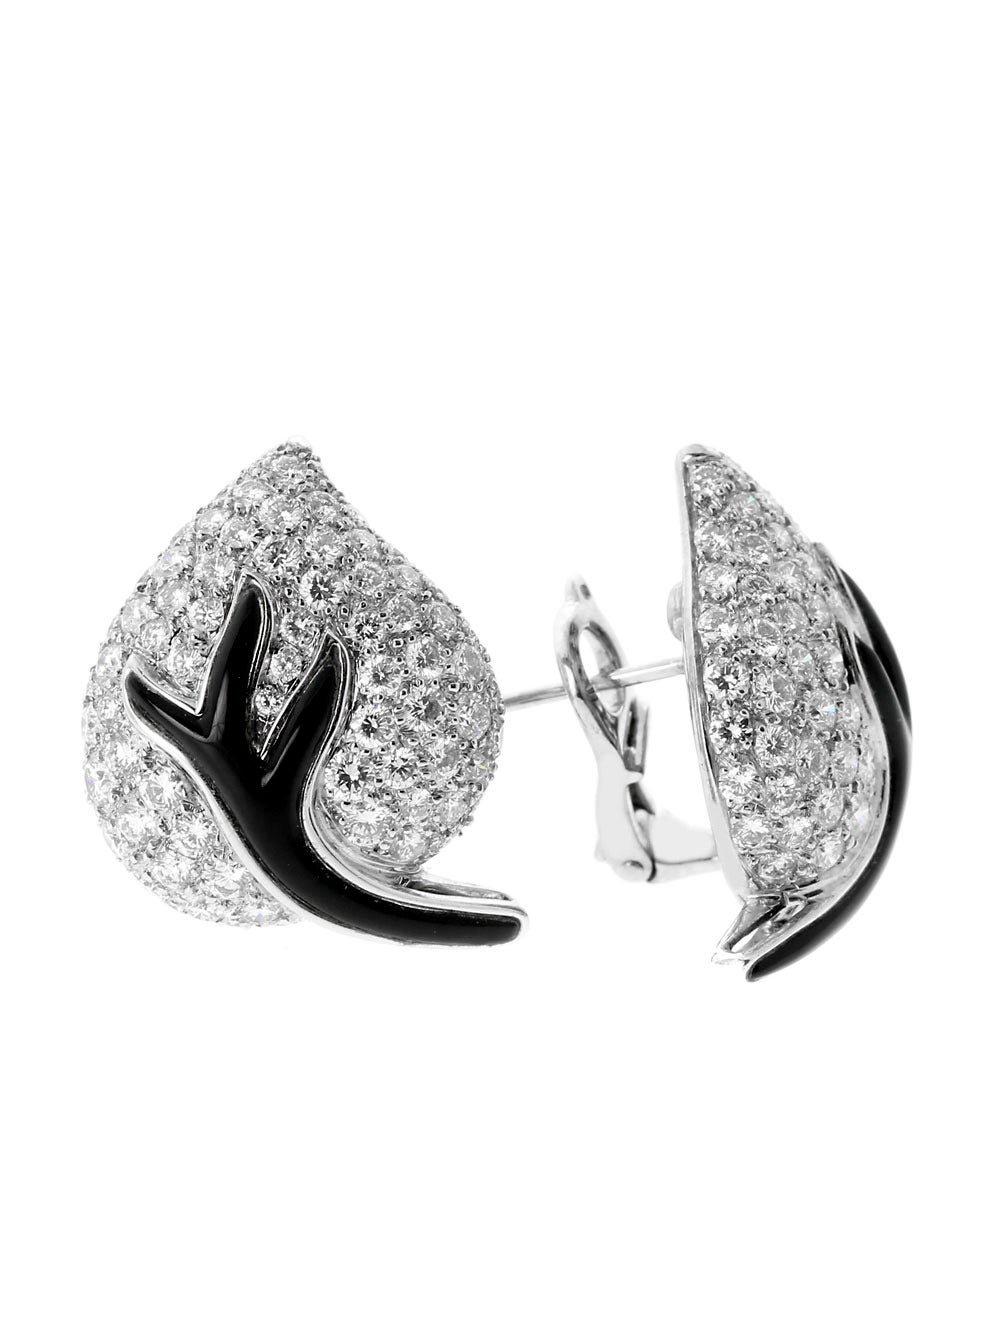 A magnificent pair of authentic Chanel earrings set with the finest Chanel round brilliant cut diamonds (5.5ct appx), and black onyx set in 18k white gold.